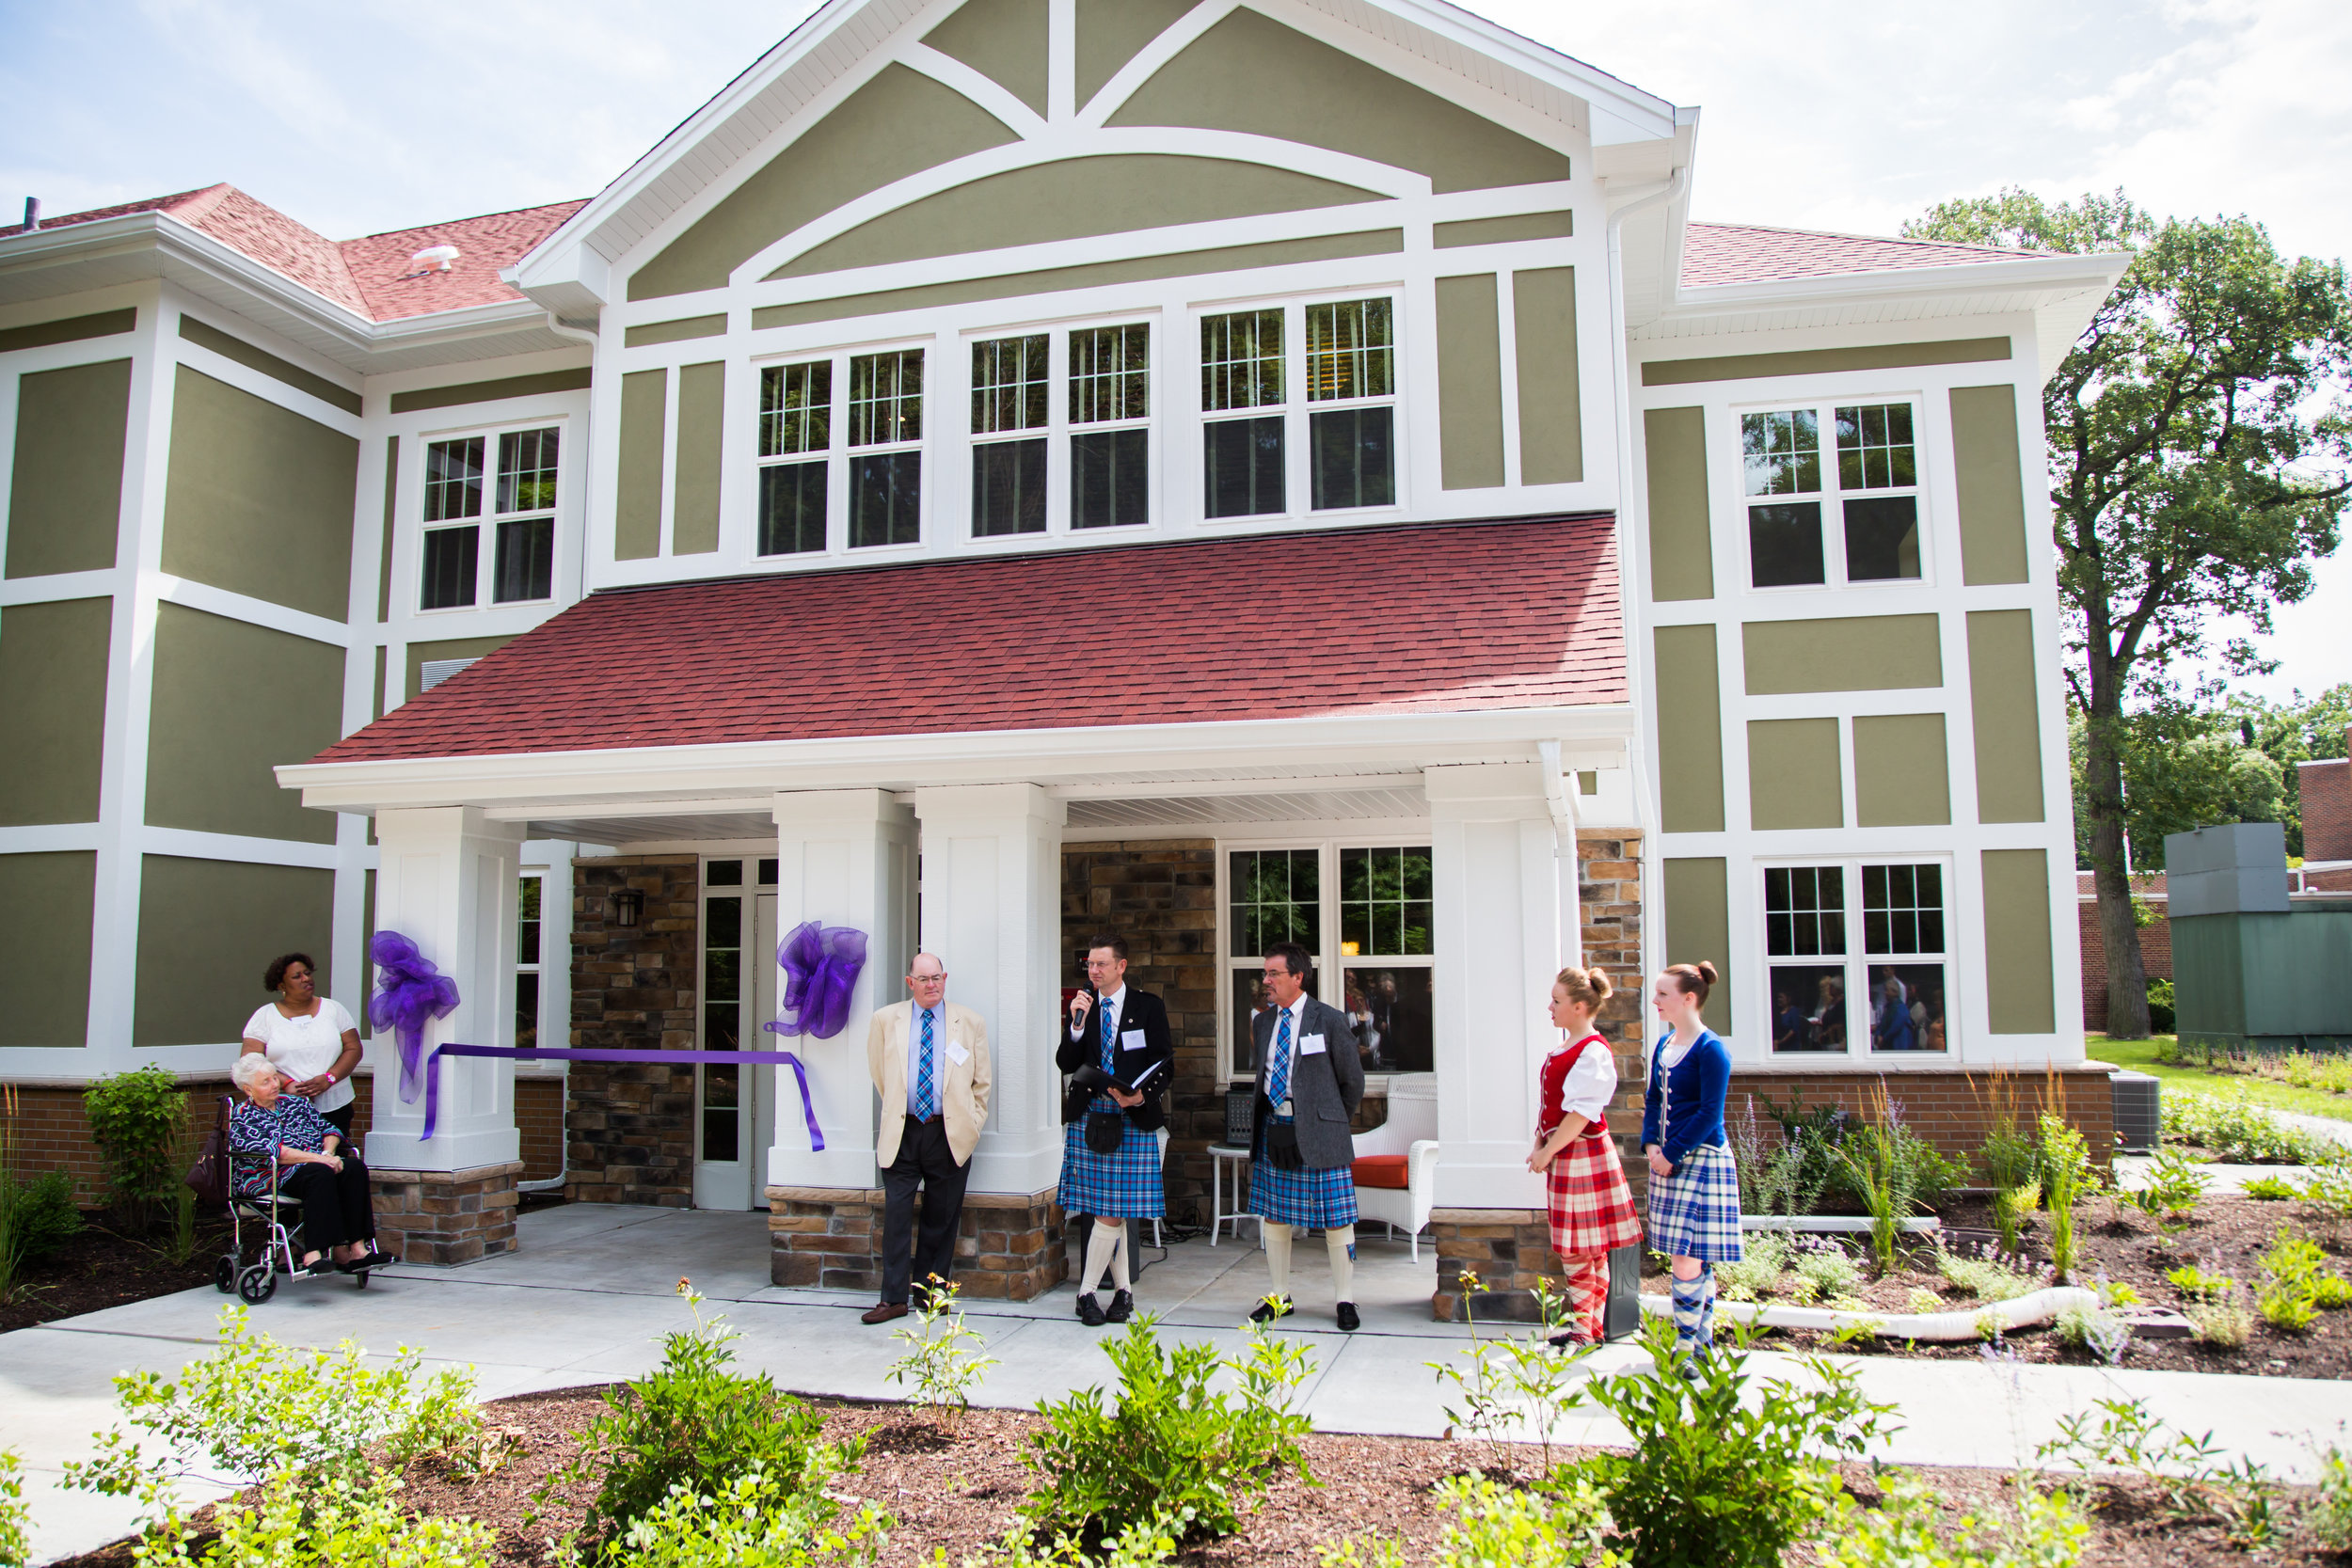 160713-The-Caledonian-House-Ribbon-Cutting-024.jpg